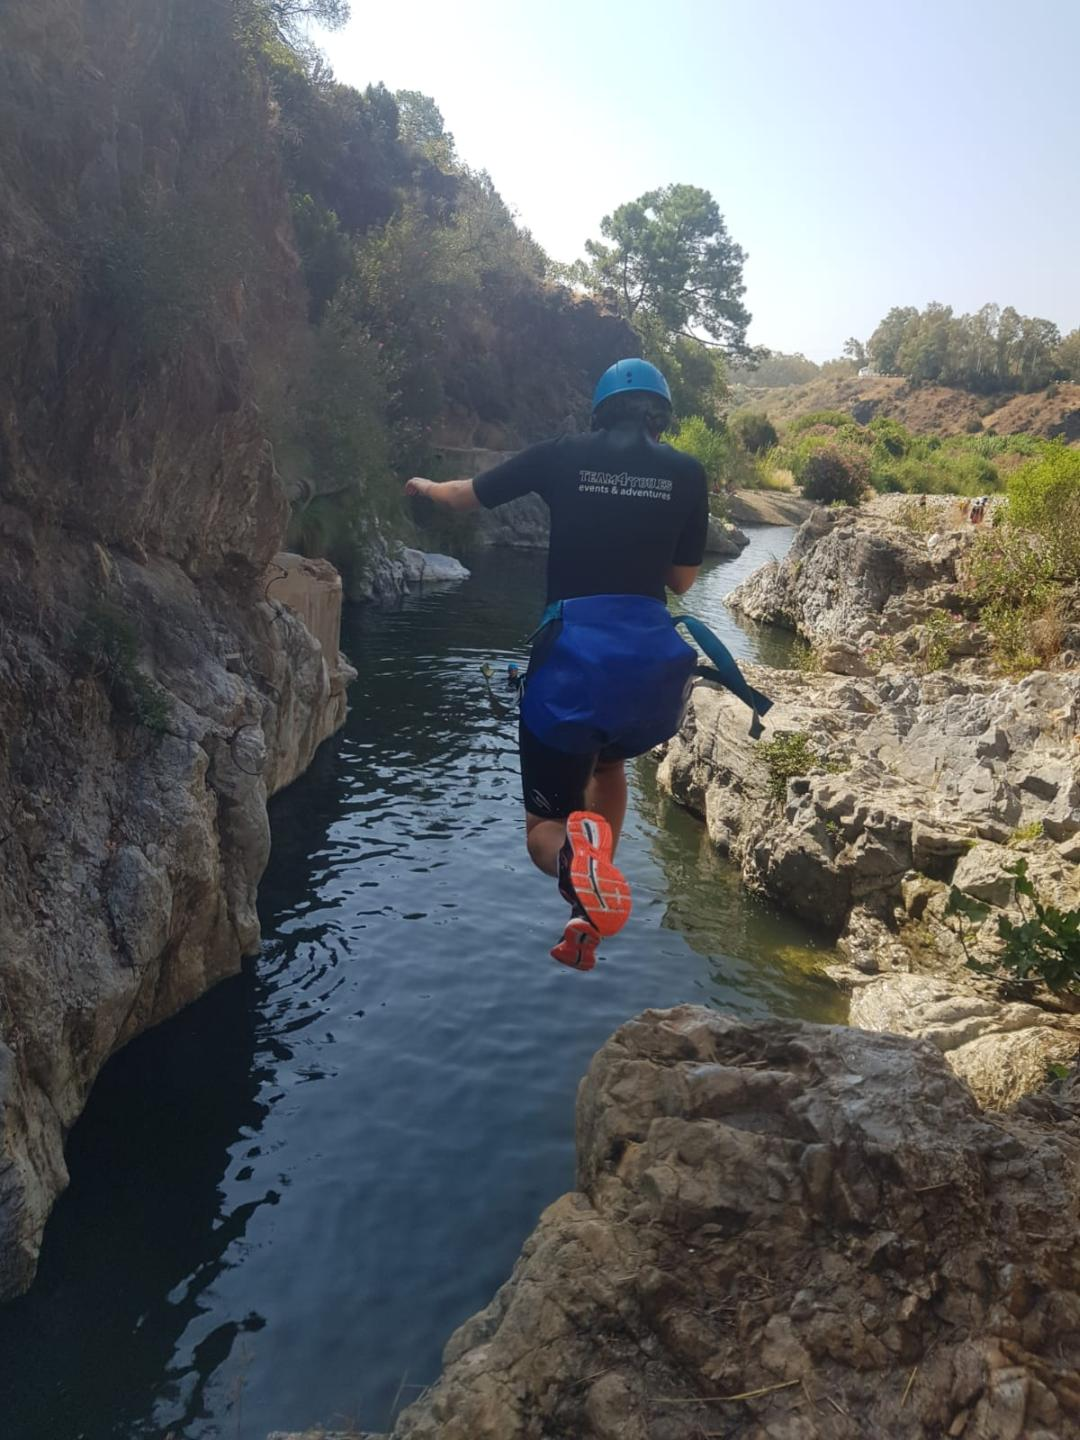 CANYONING LEVEL 1 Canyon descent through waterfall and natural waterslides 06 | Marbella Team4you